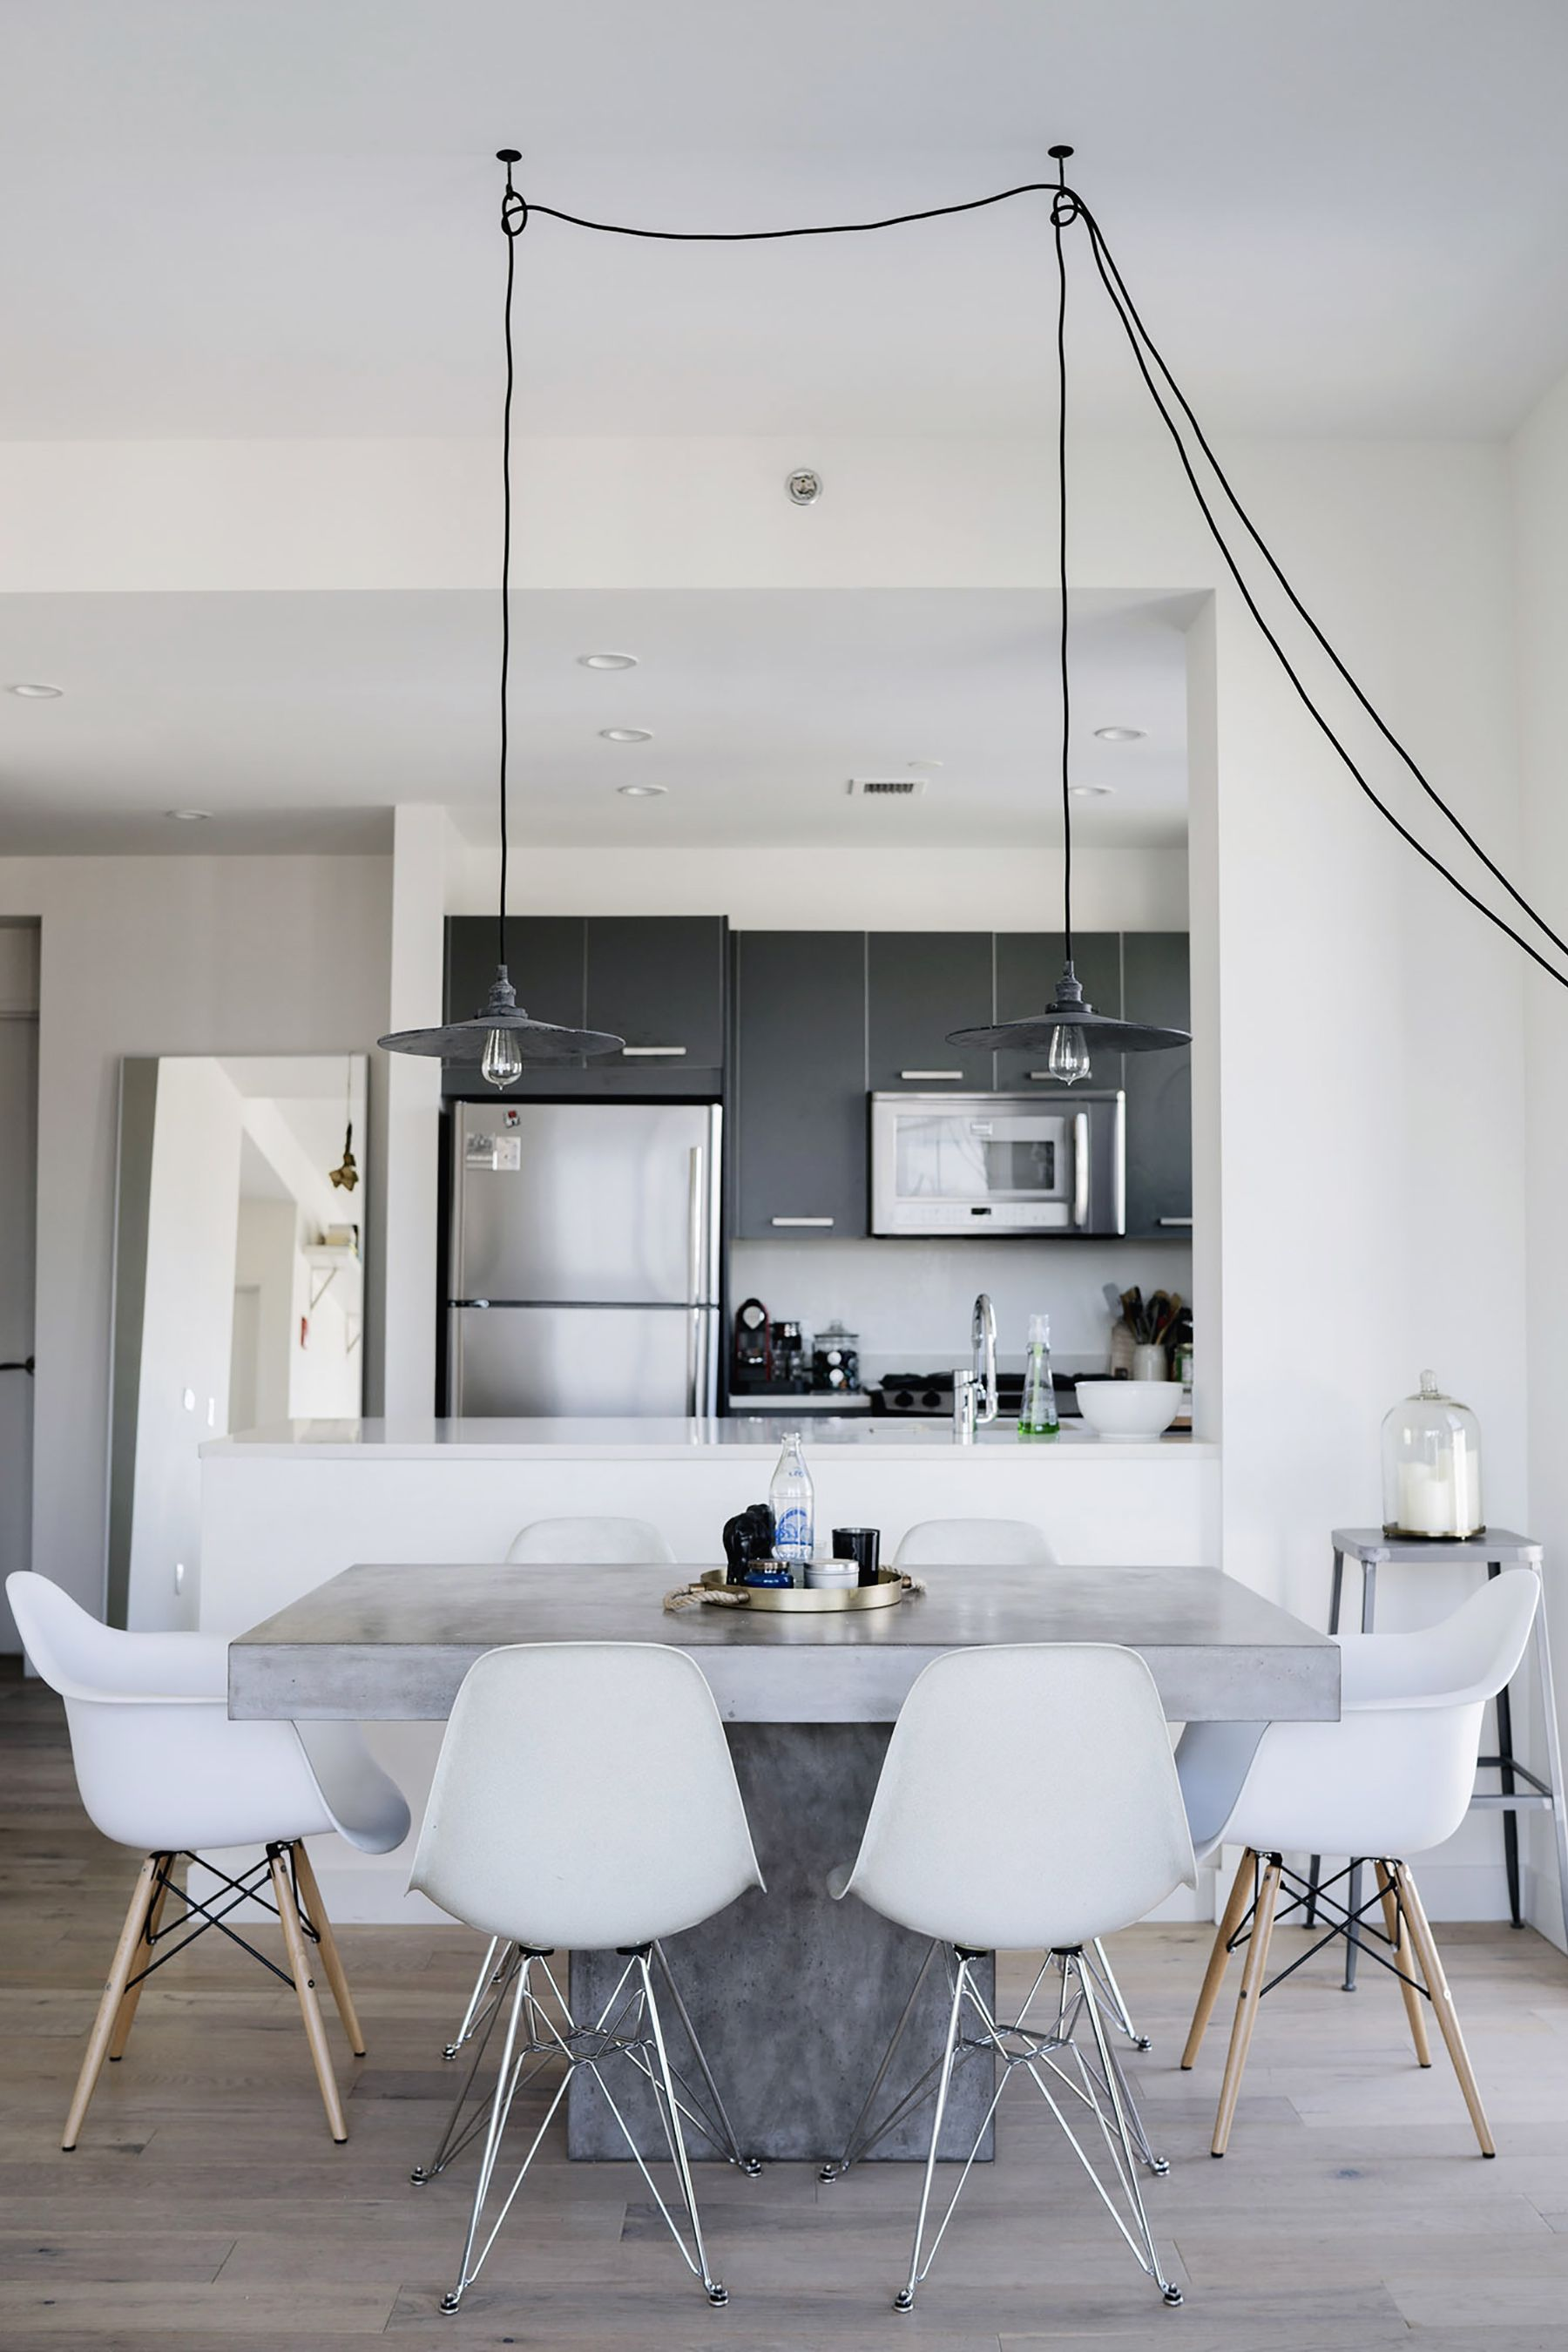 Scandinavian industrial interior in New York City | Happy Grey Lucky & Scandinavian industrial interior in New York City | Happy Grey ...